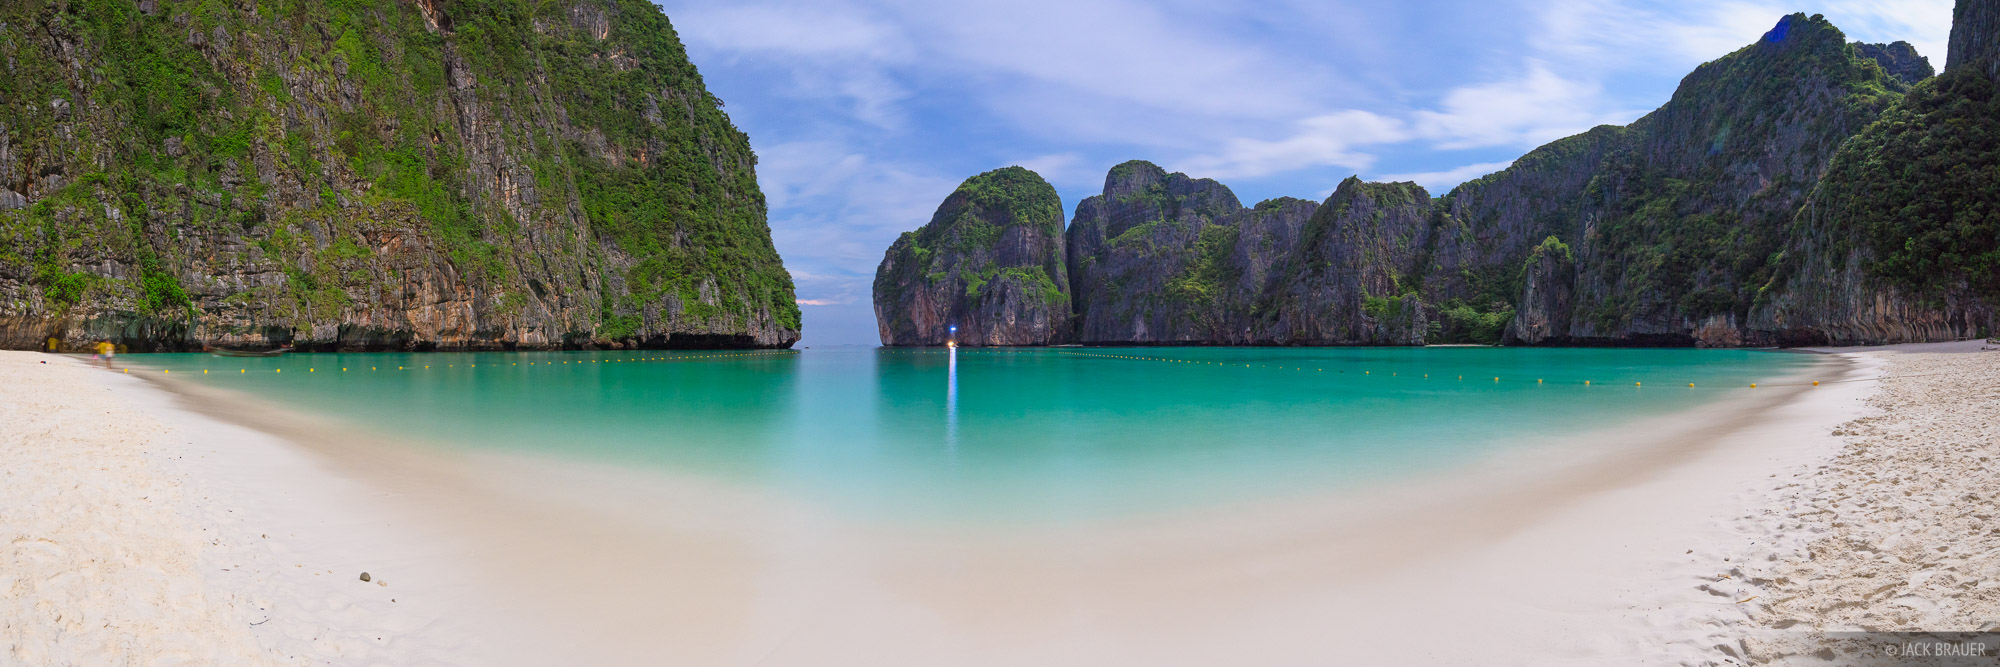 Ko Phi-Phi Leh, Maya Bay, Thailand, Andaman Sea, beach, panorama, photo